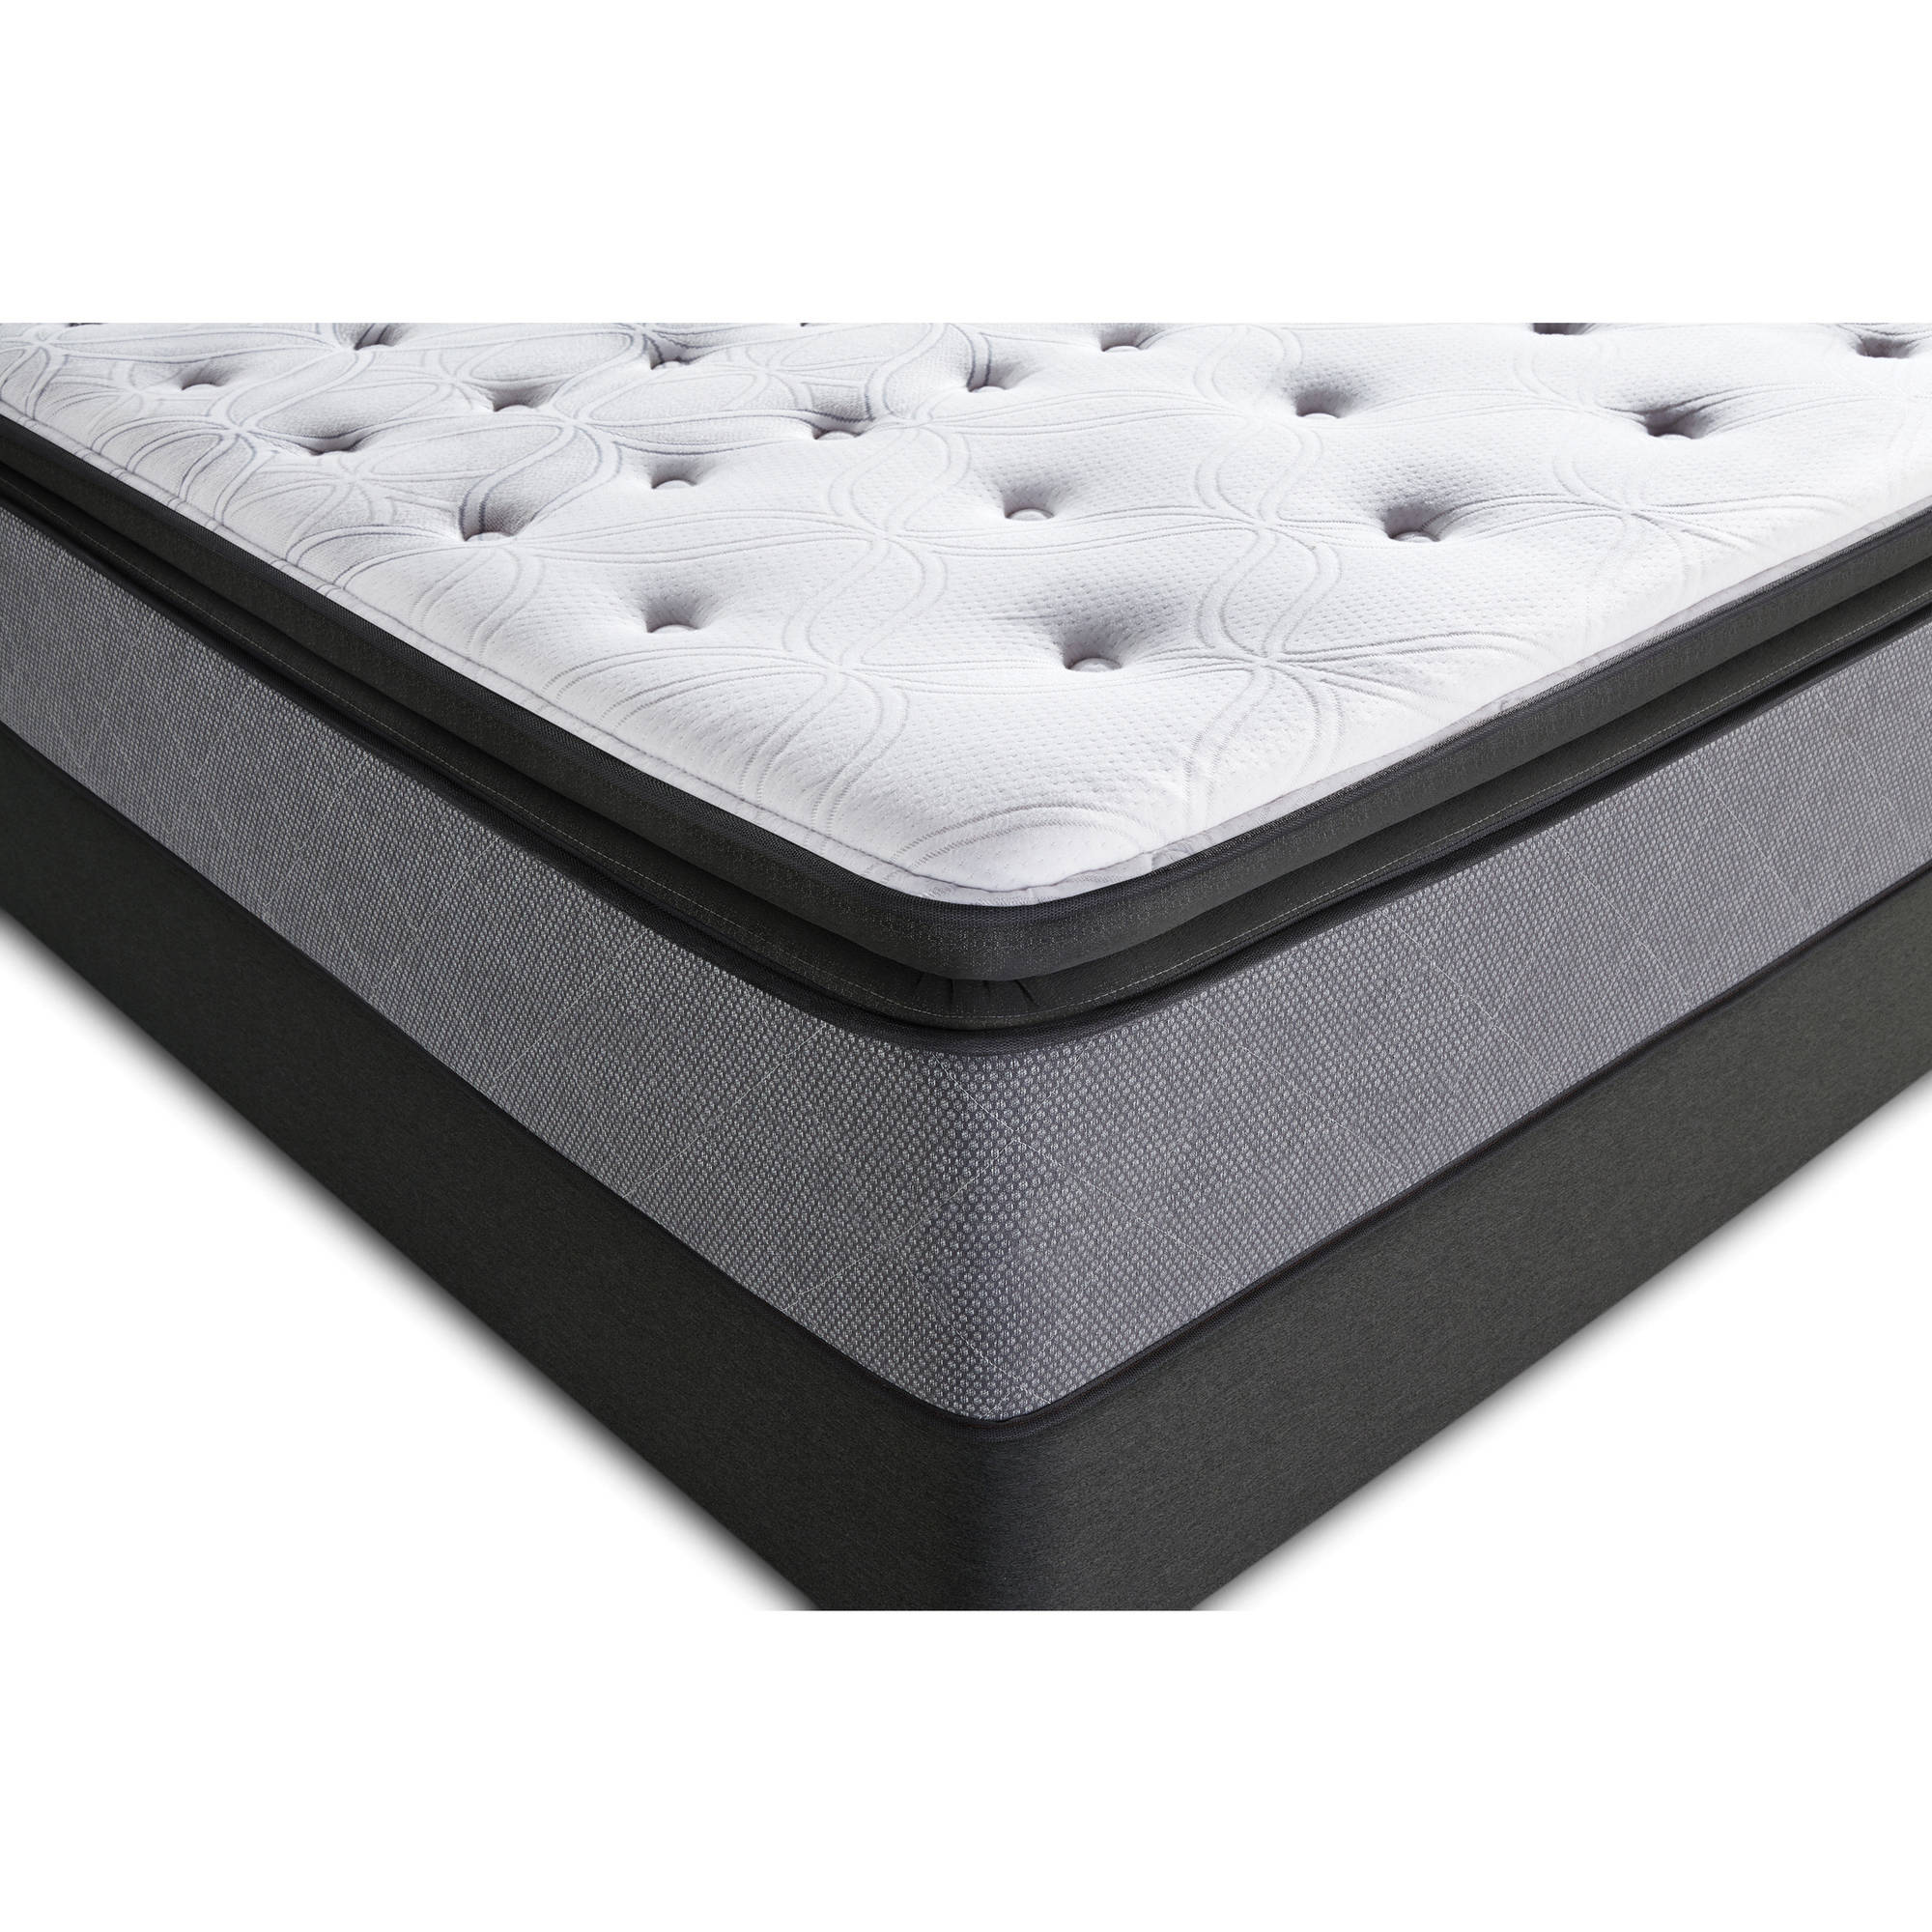 Sealy Posturepedic Plush Euro Pillowtop Chalone Mattress Walmart